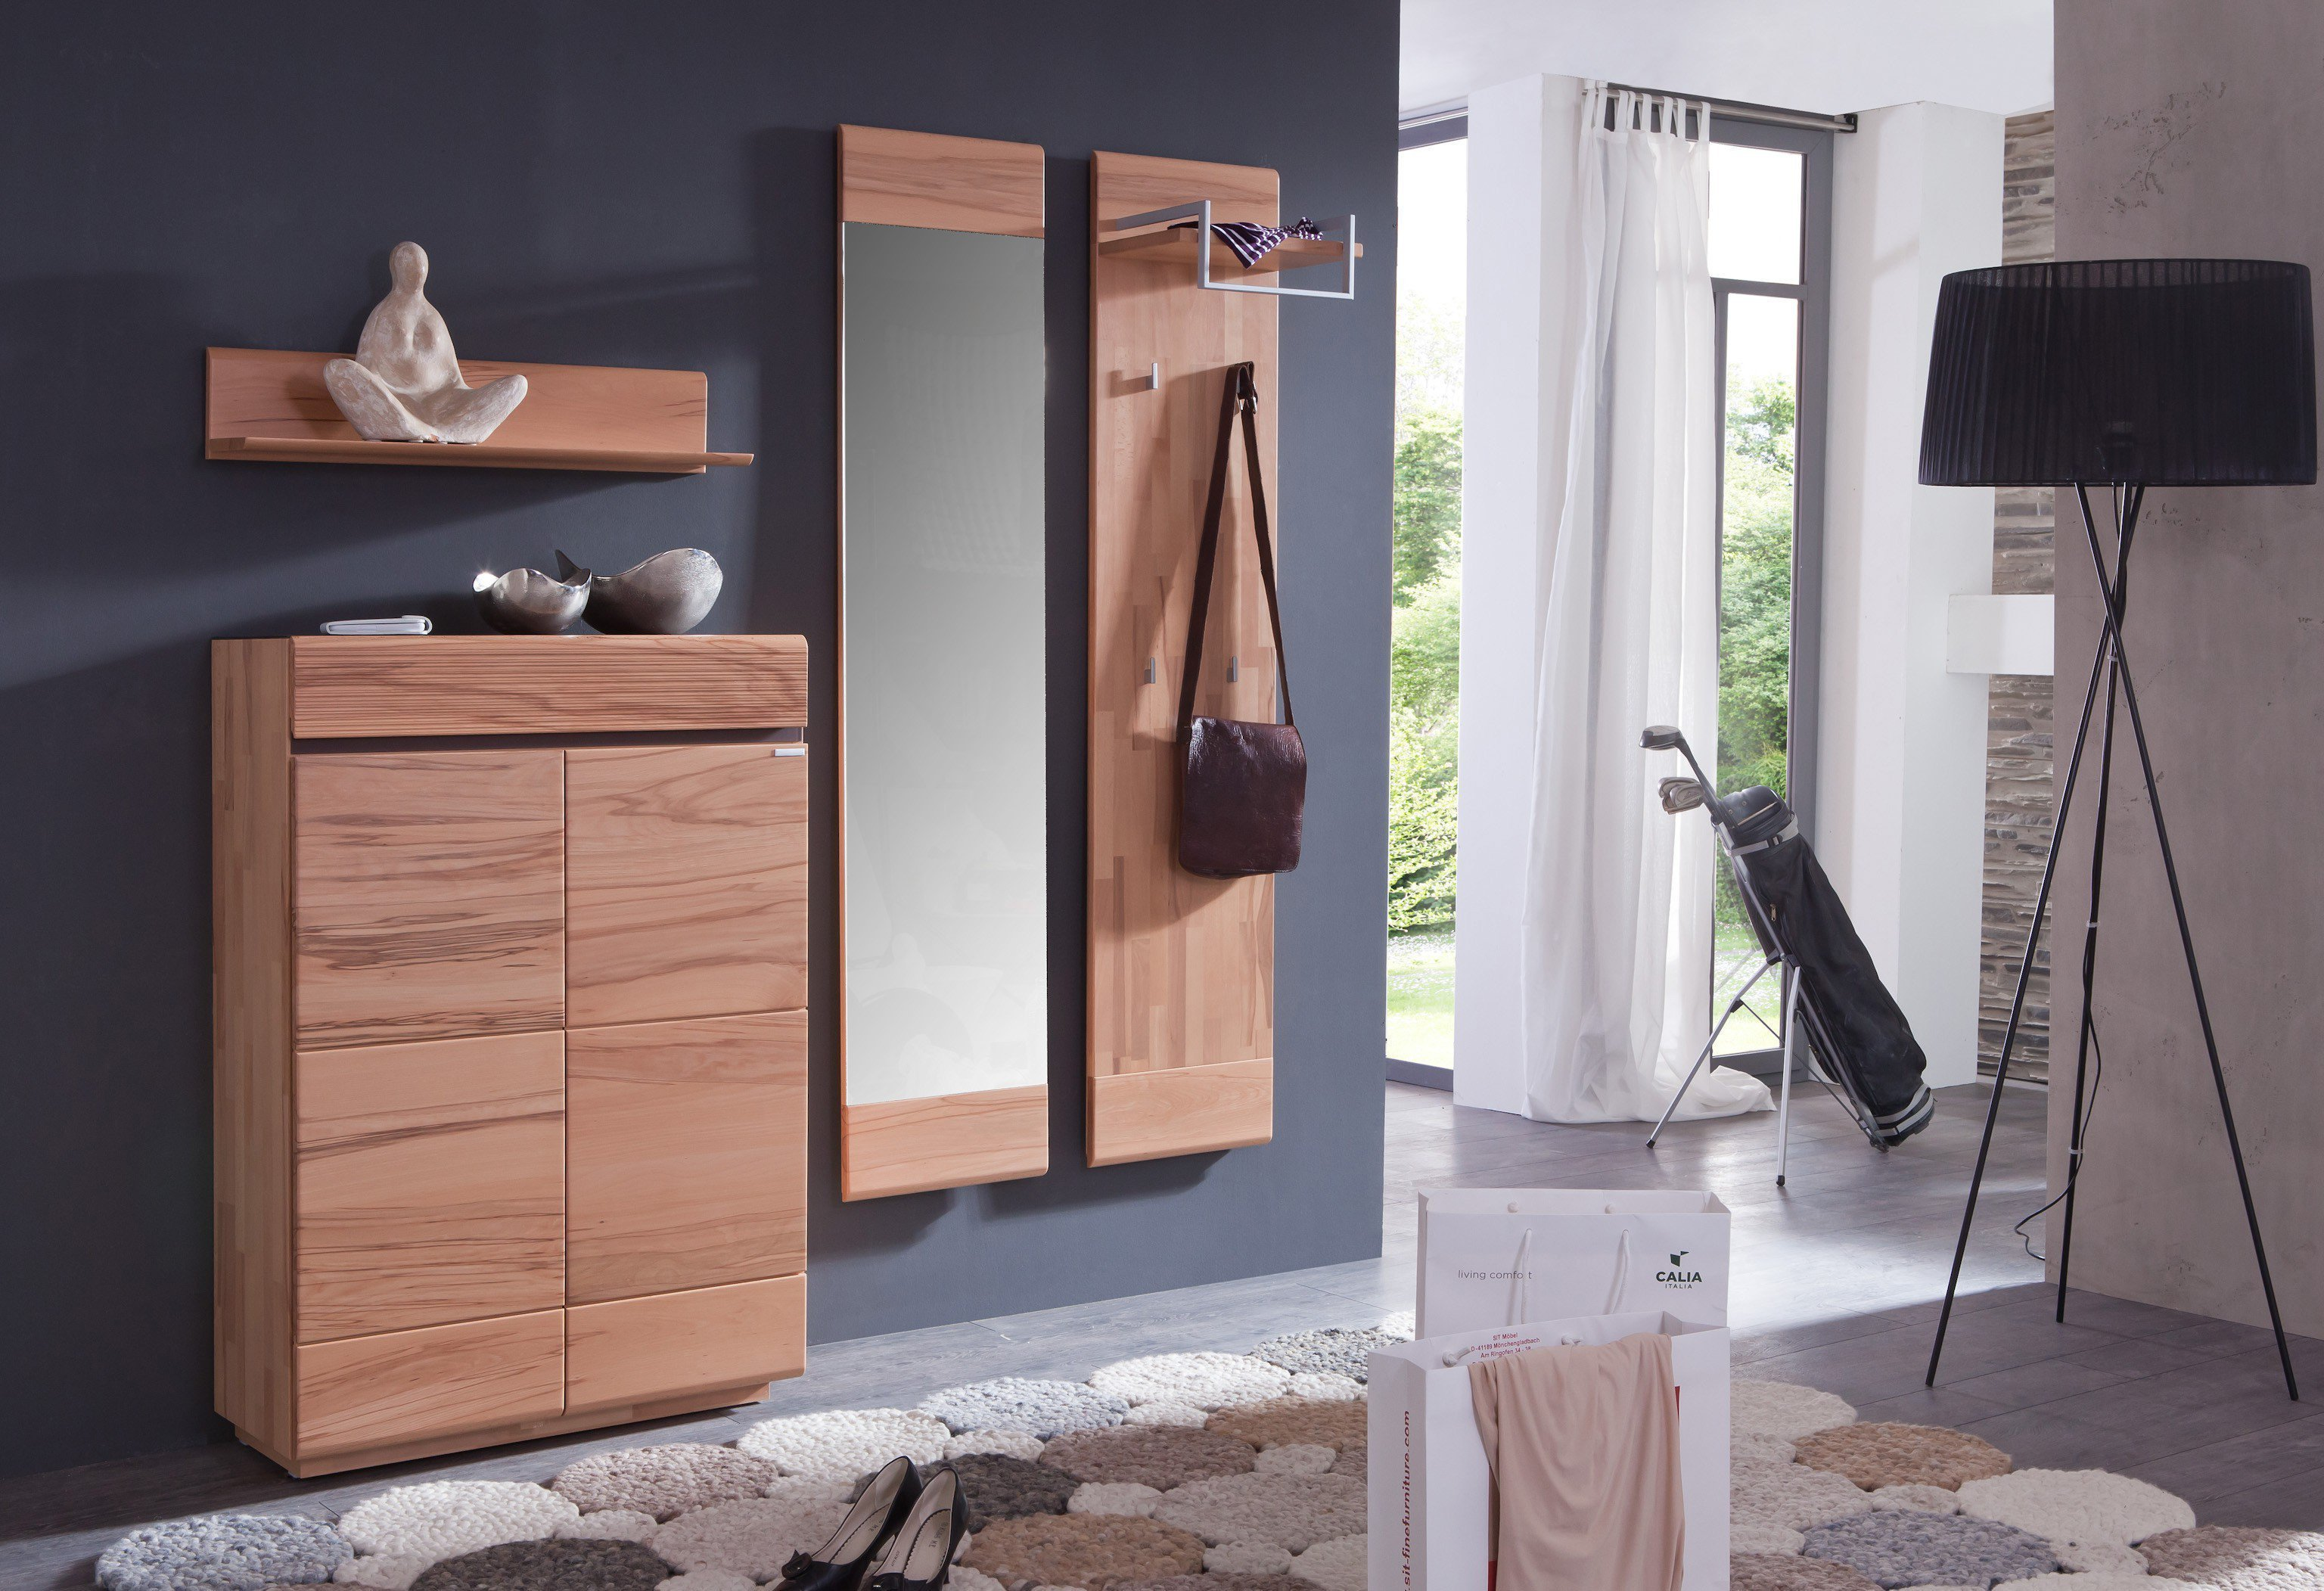 garderobe cosima kernbuche bienenm hle m bel letz. Black Bedroom Furniture Sets. Home Design Ideas